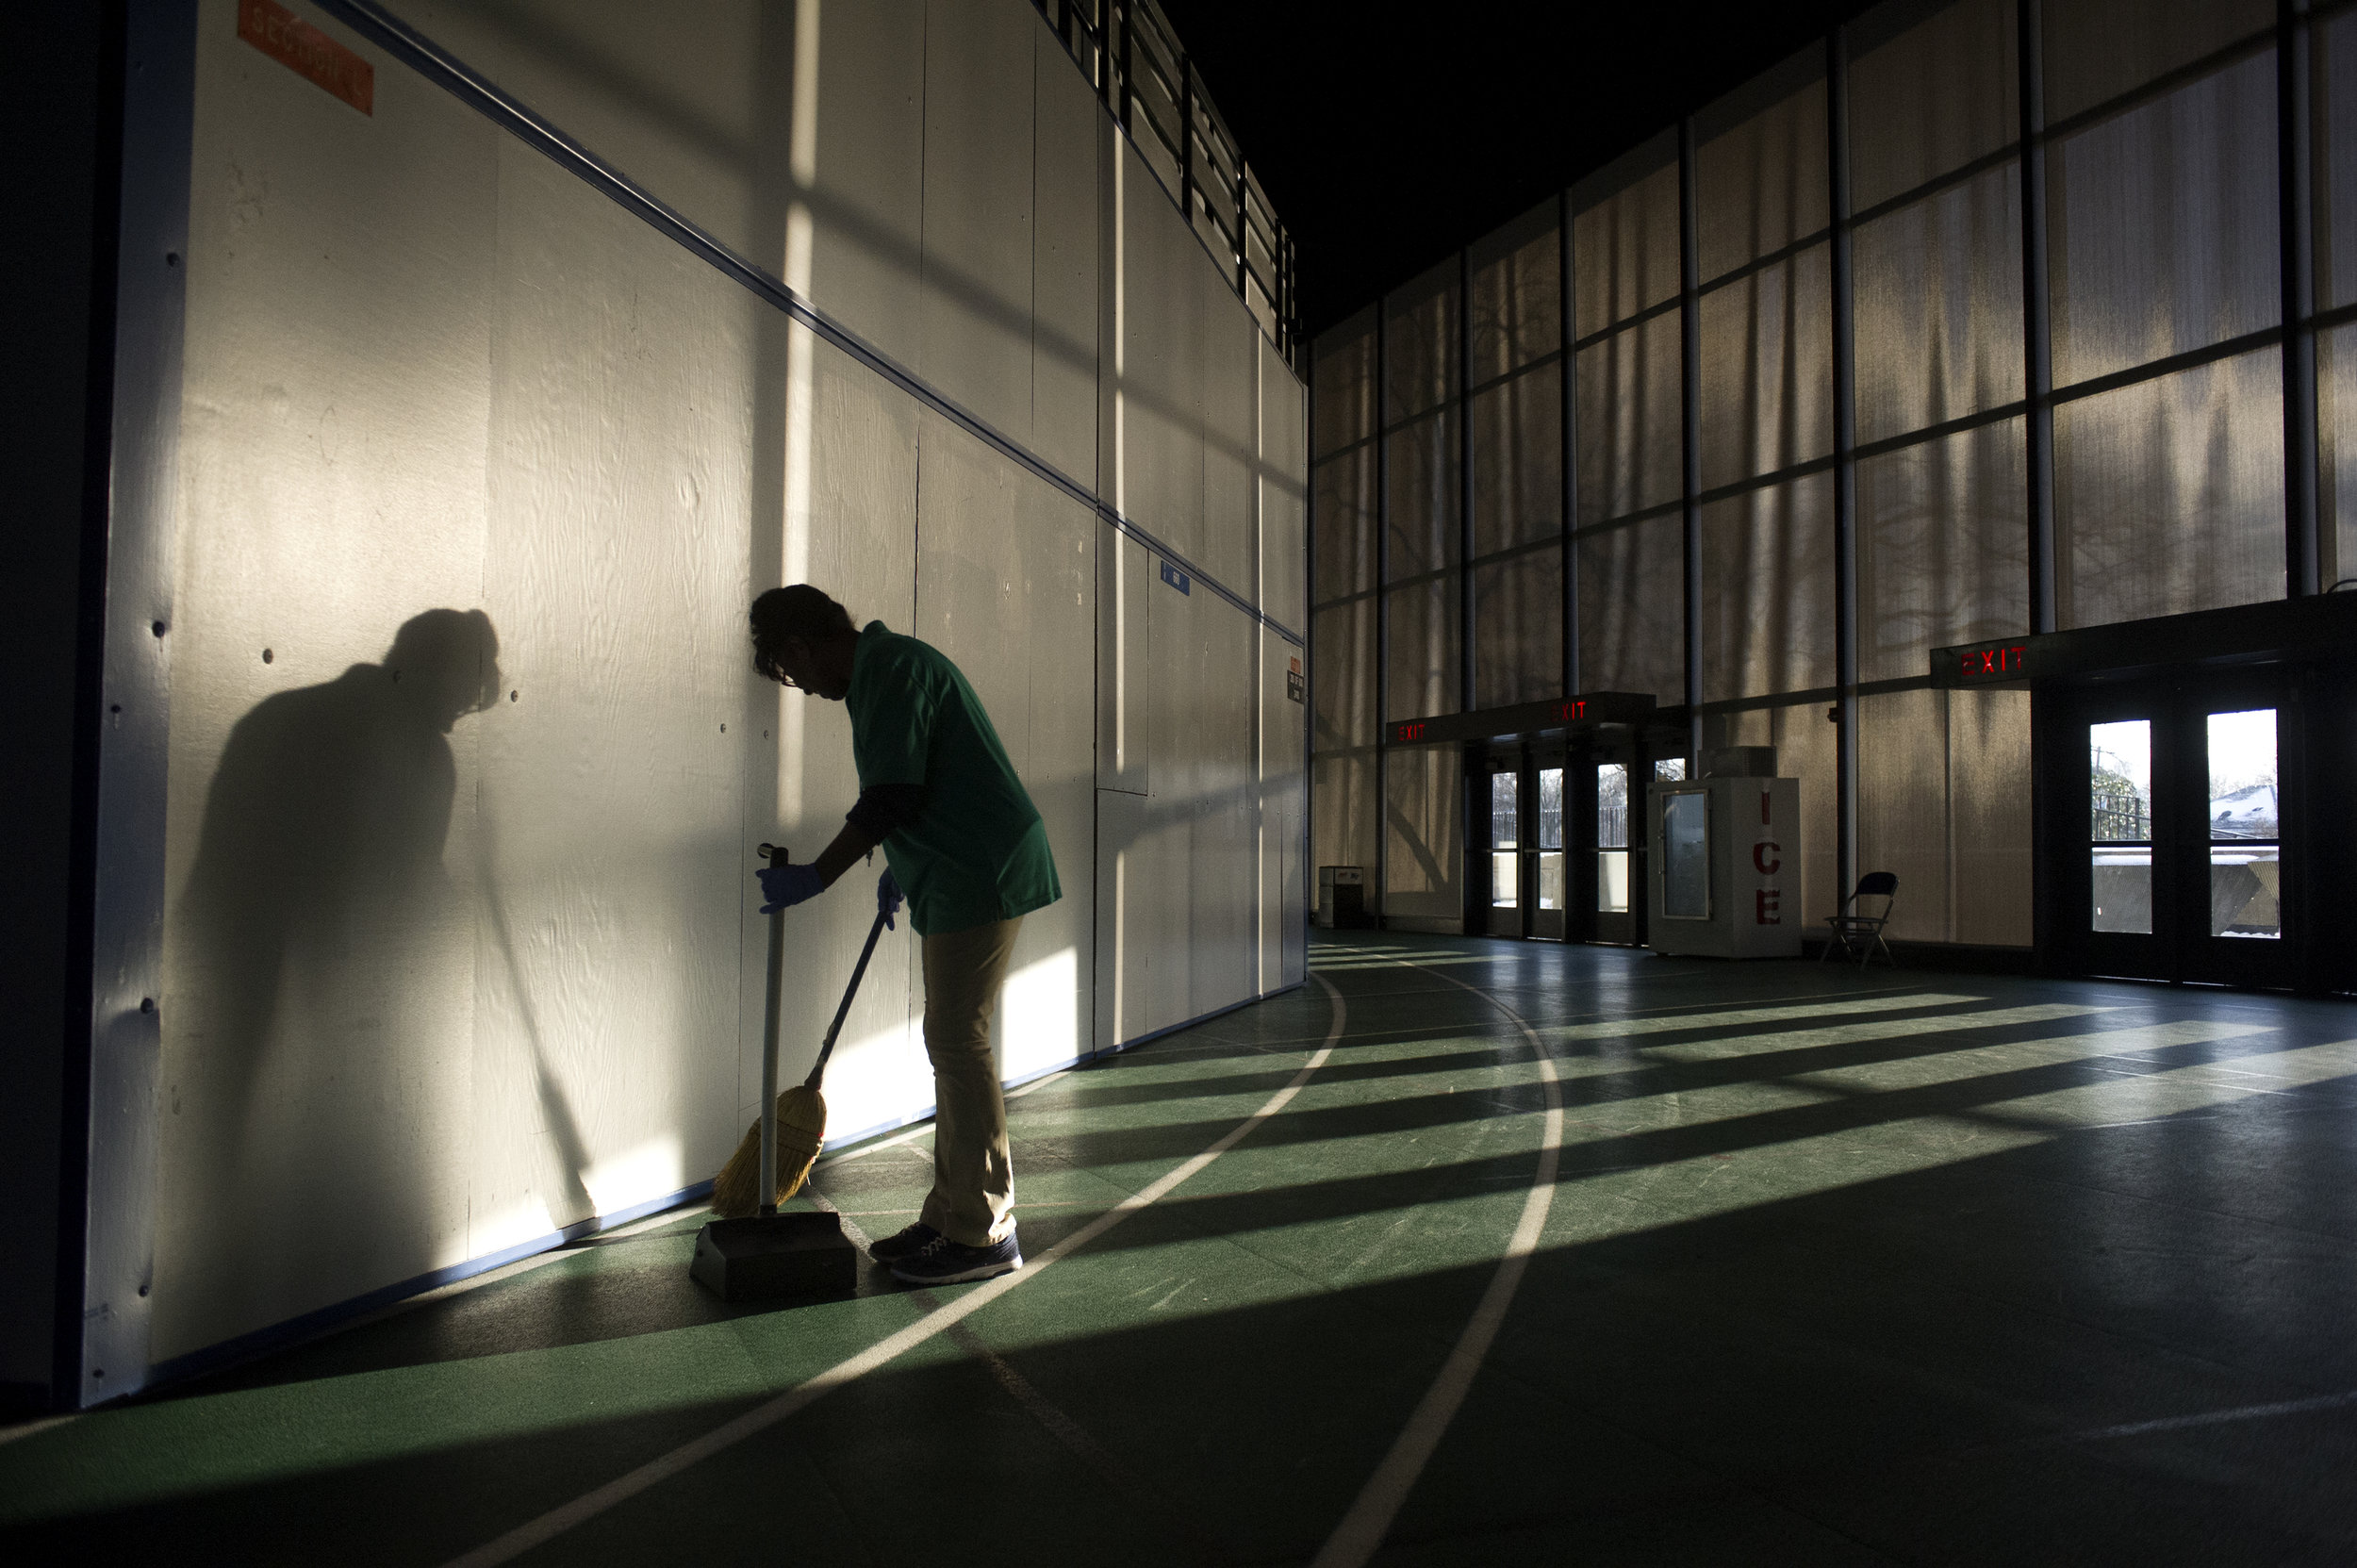 Jan Williams of Murfreesboro sweeps the floors of the Murphy Center in Murfreesboro Thursday, Mar. 5, 2015.